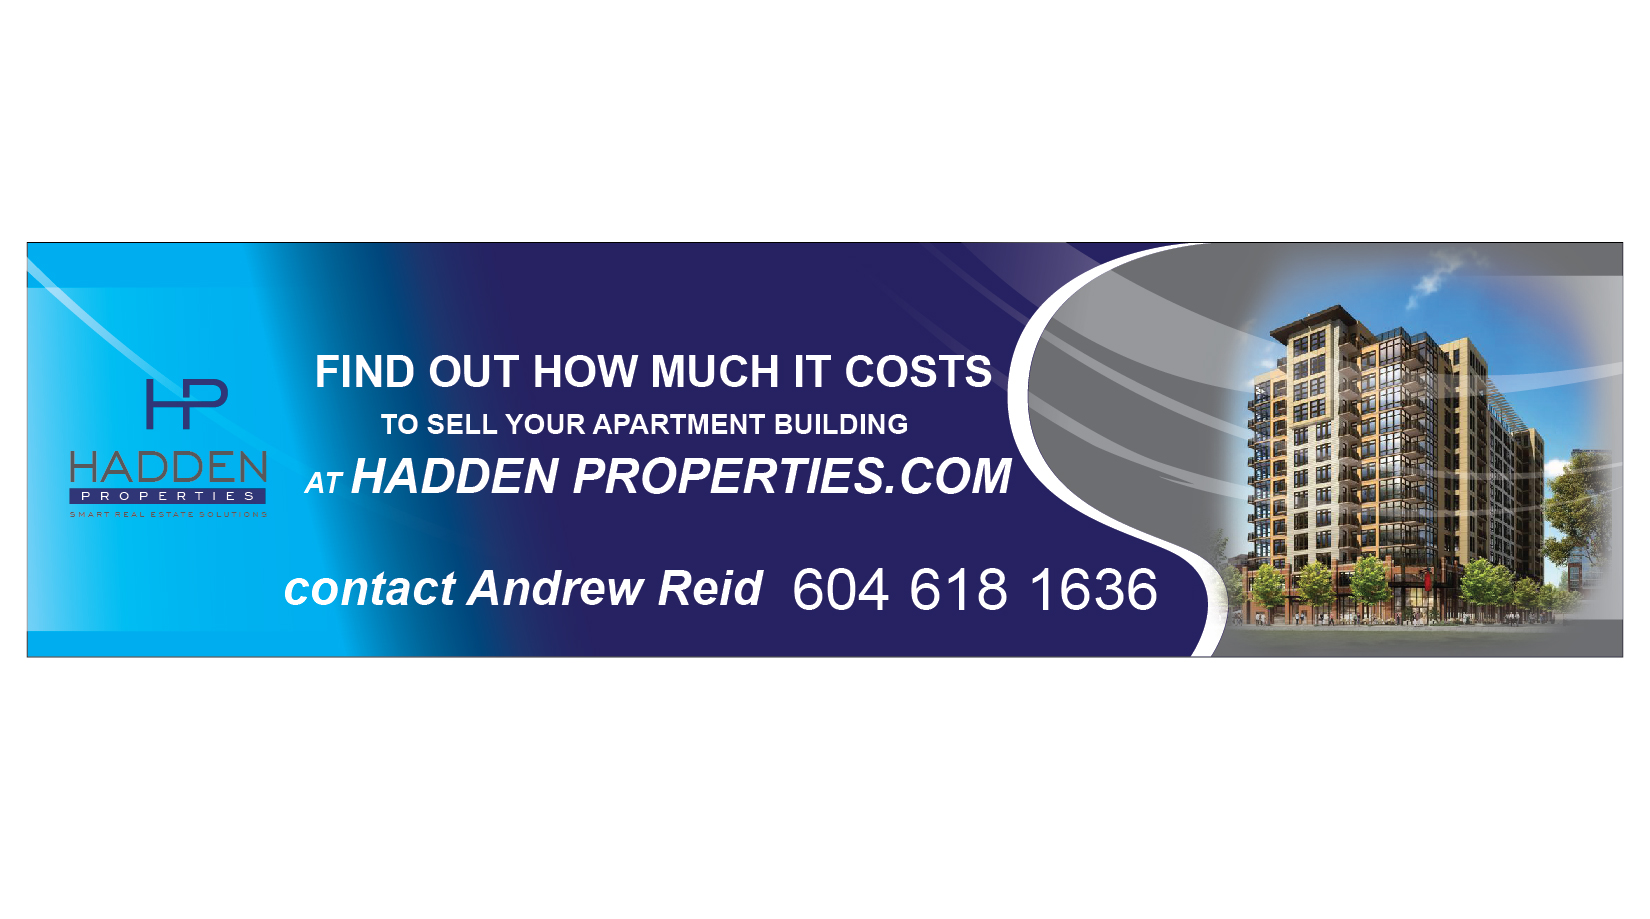 Banner Ad Design Contests Creative Banner Ad Design For Hadden Properties Ltd Design No 55 By Royalsm Hiretheworld